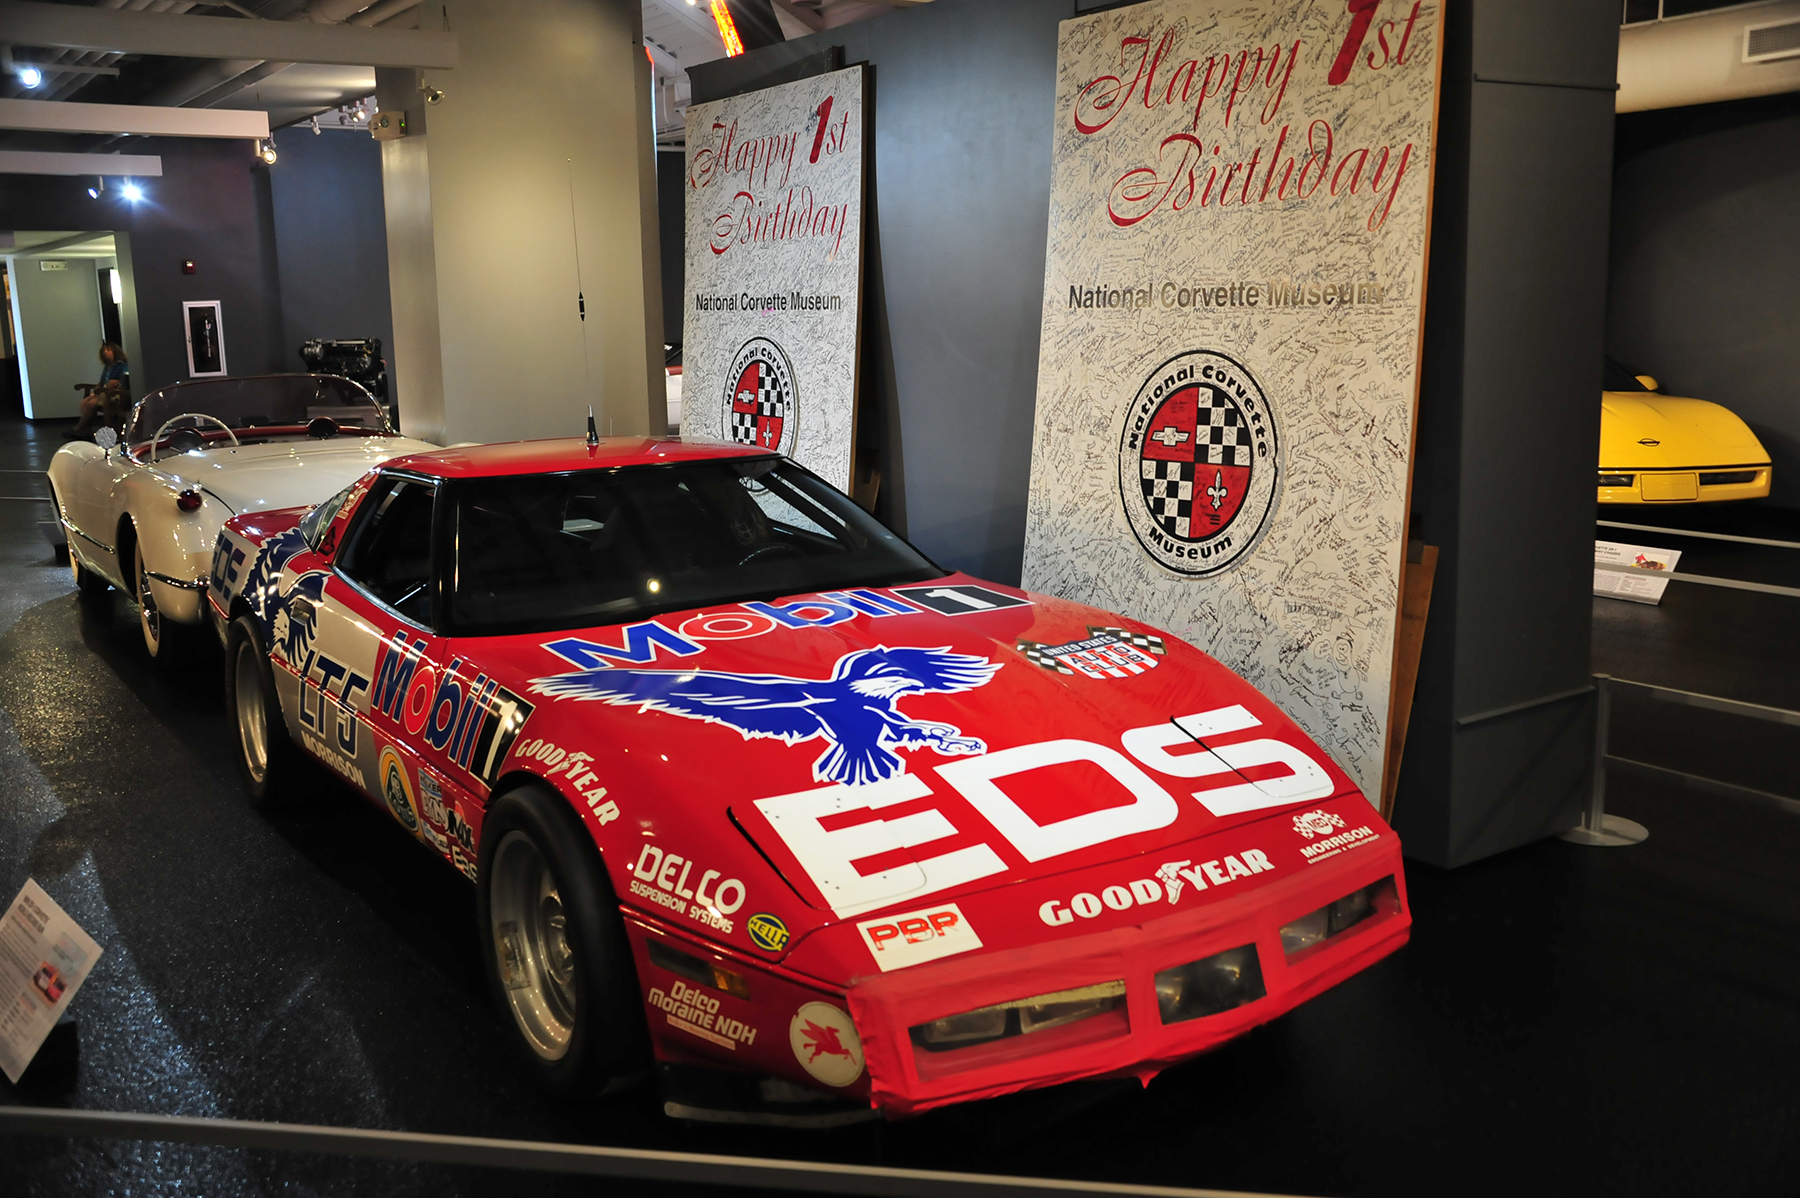 National Corvette Museum >> Epochal Corvettes Displayed in Celebration of Museum's 25th Anniversary – National Corvette Museum